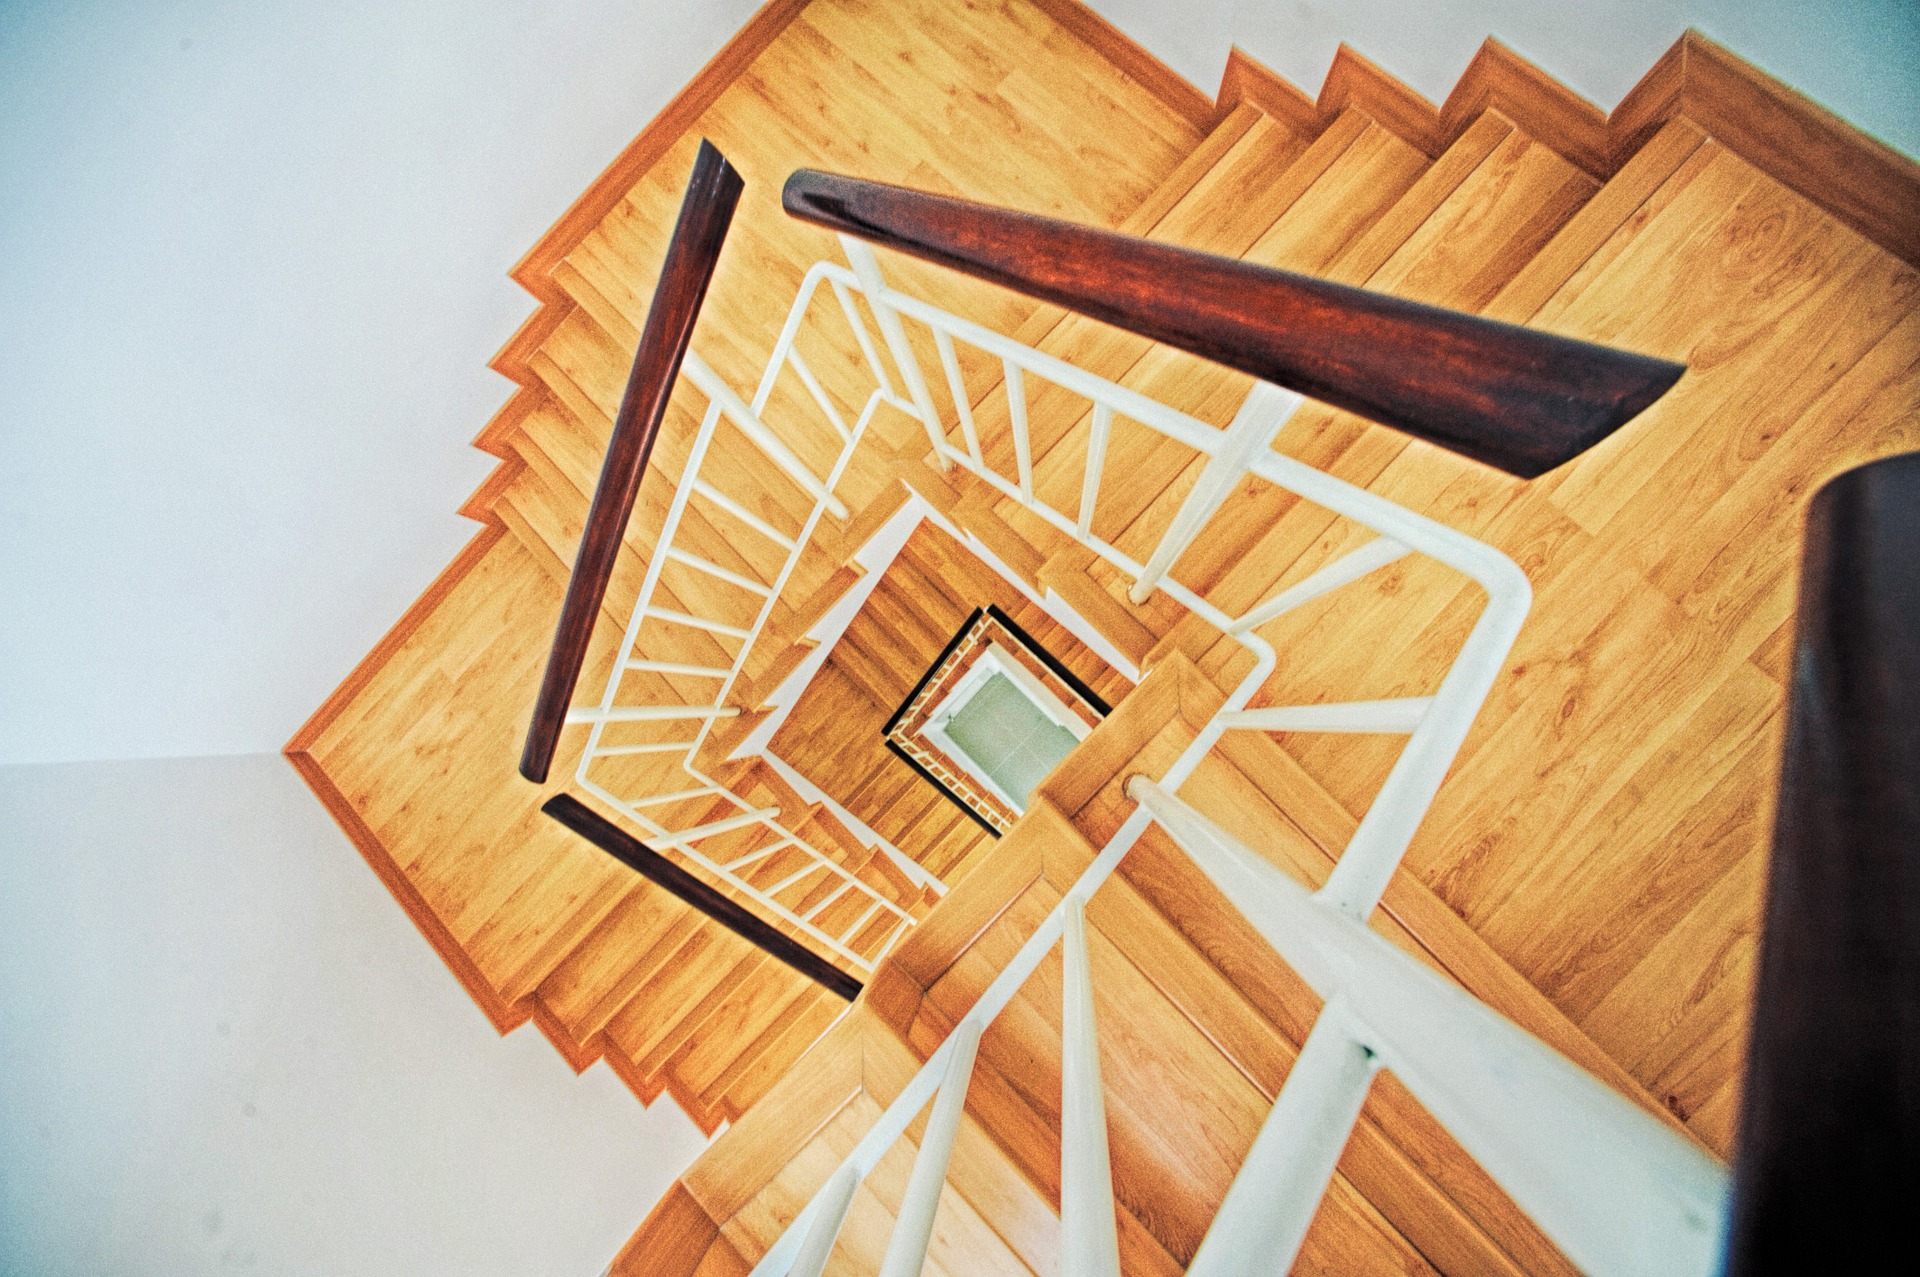 stairs-863348_1920